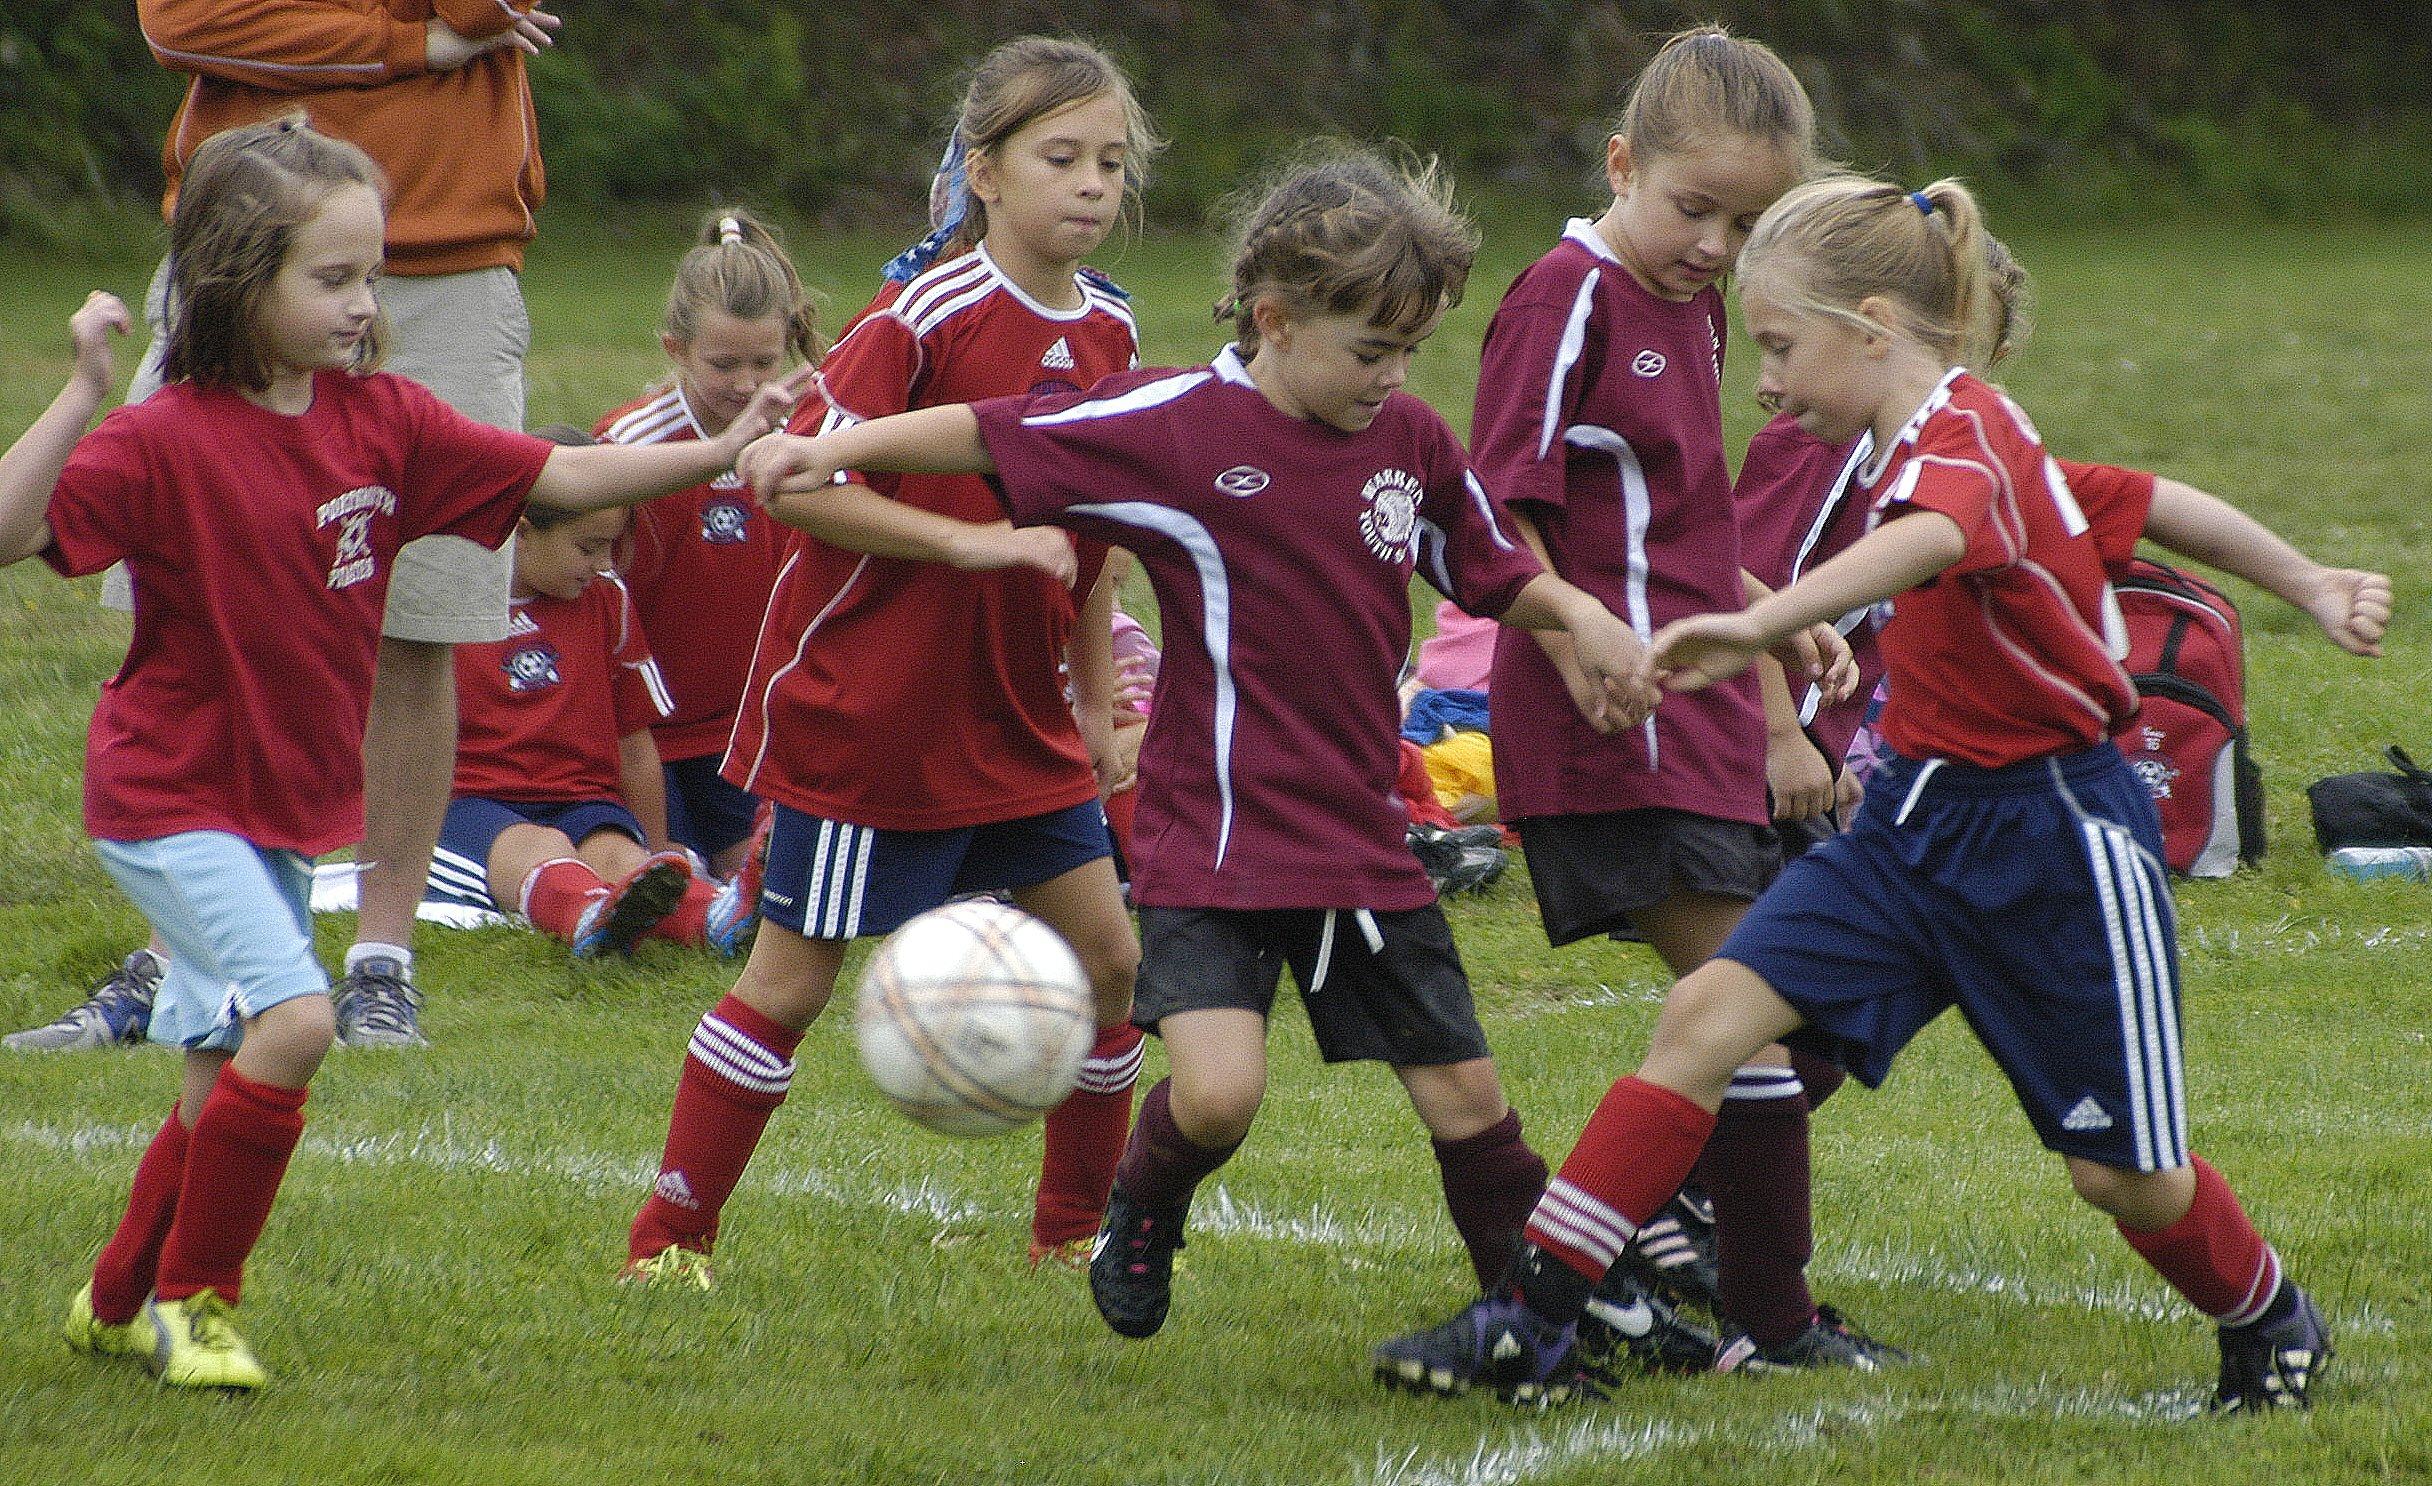 Keep Girls in Youth Sports with These 5 Simple Tips